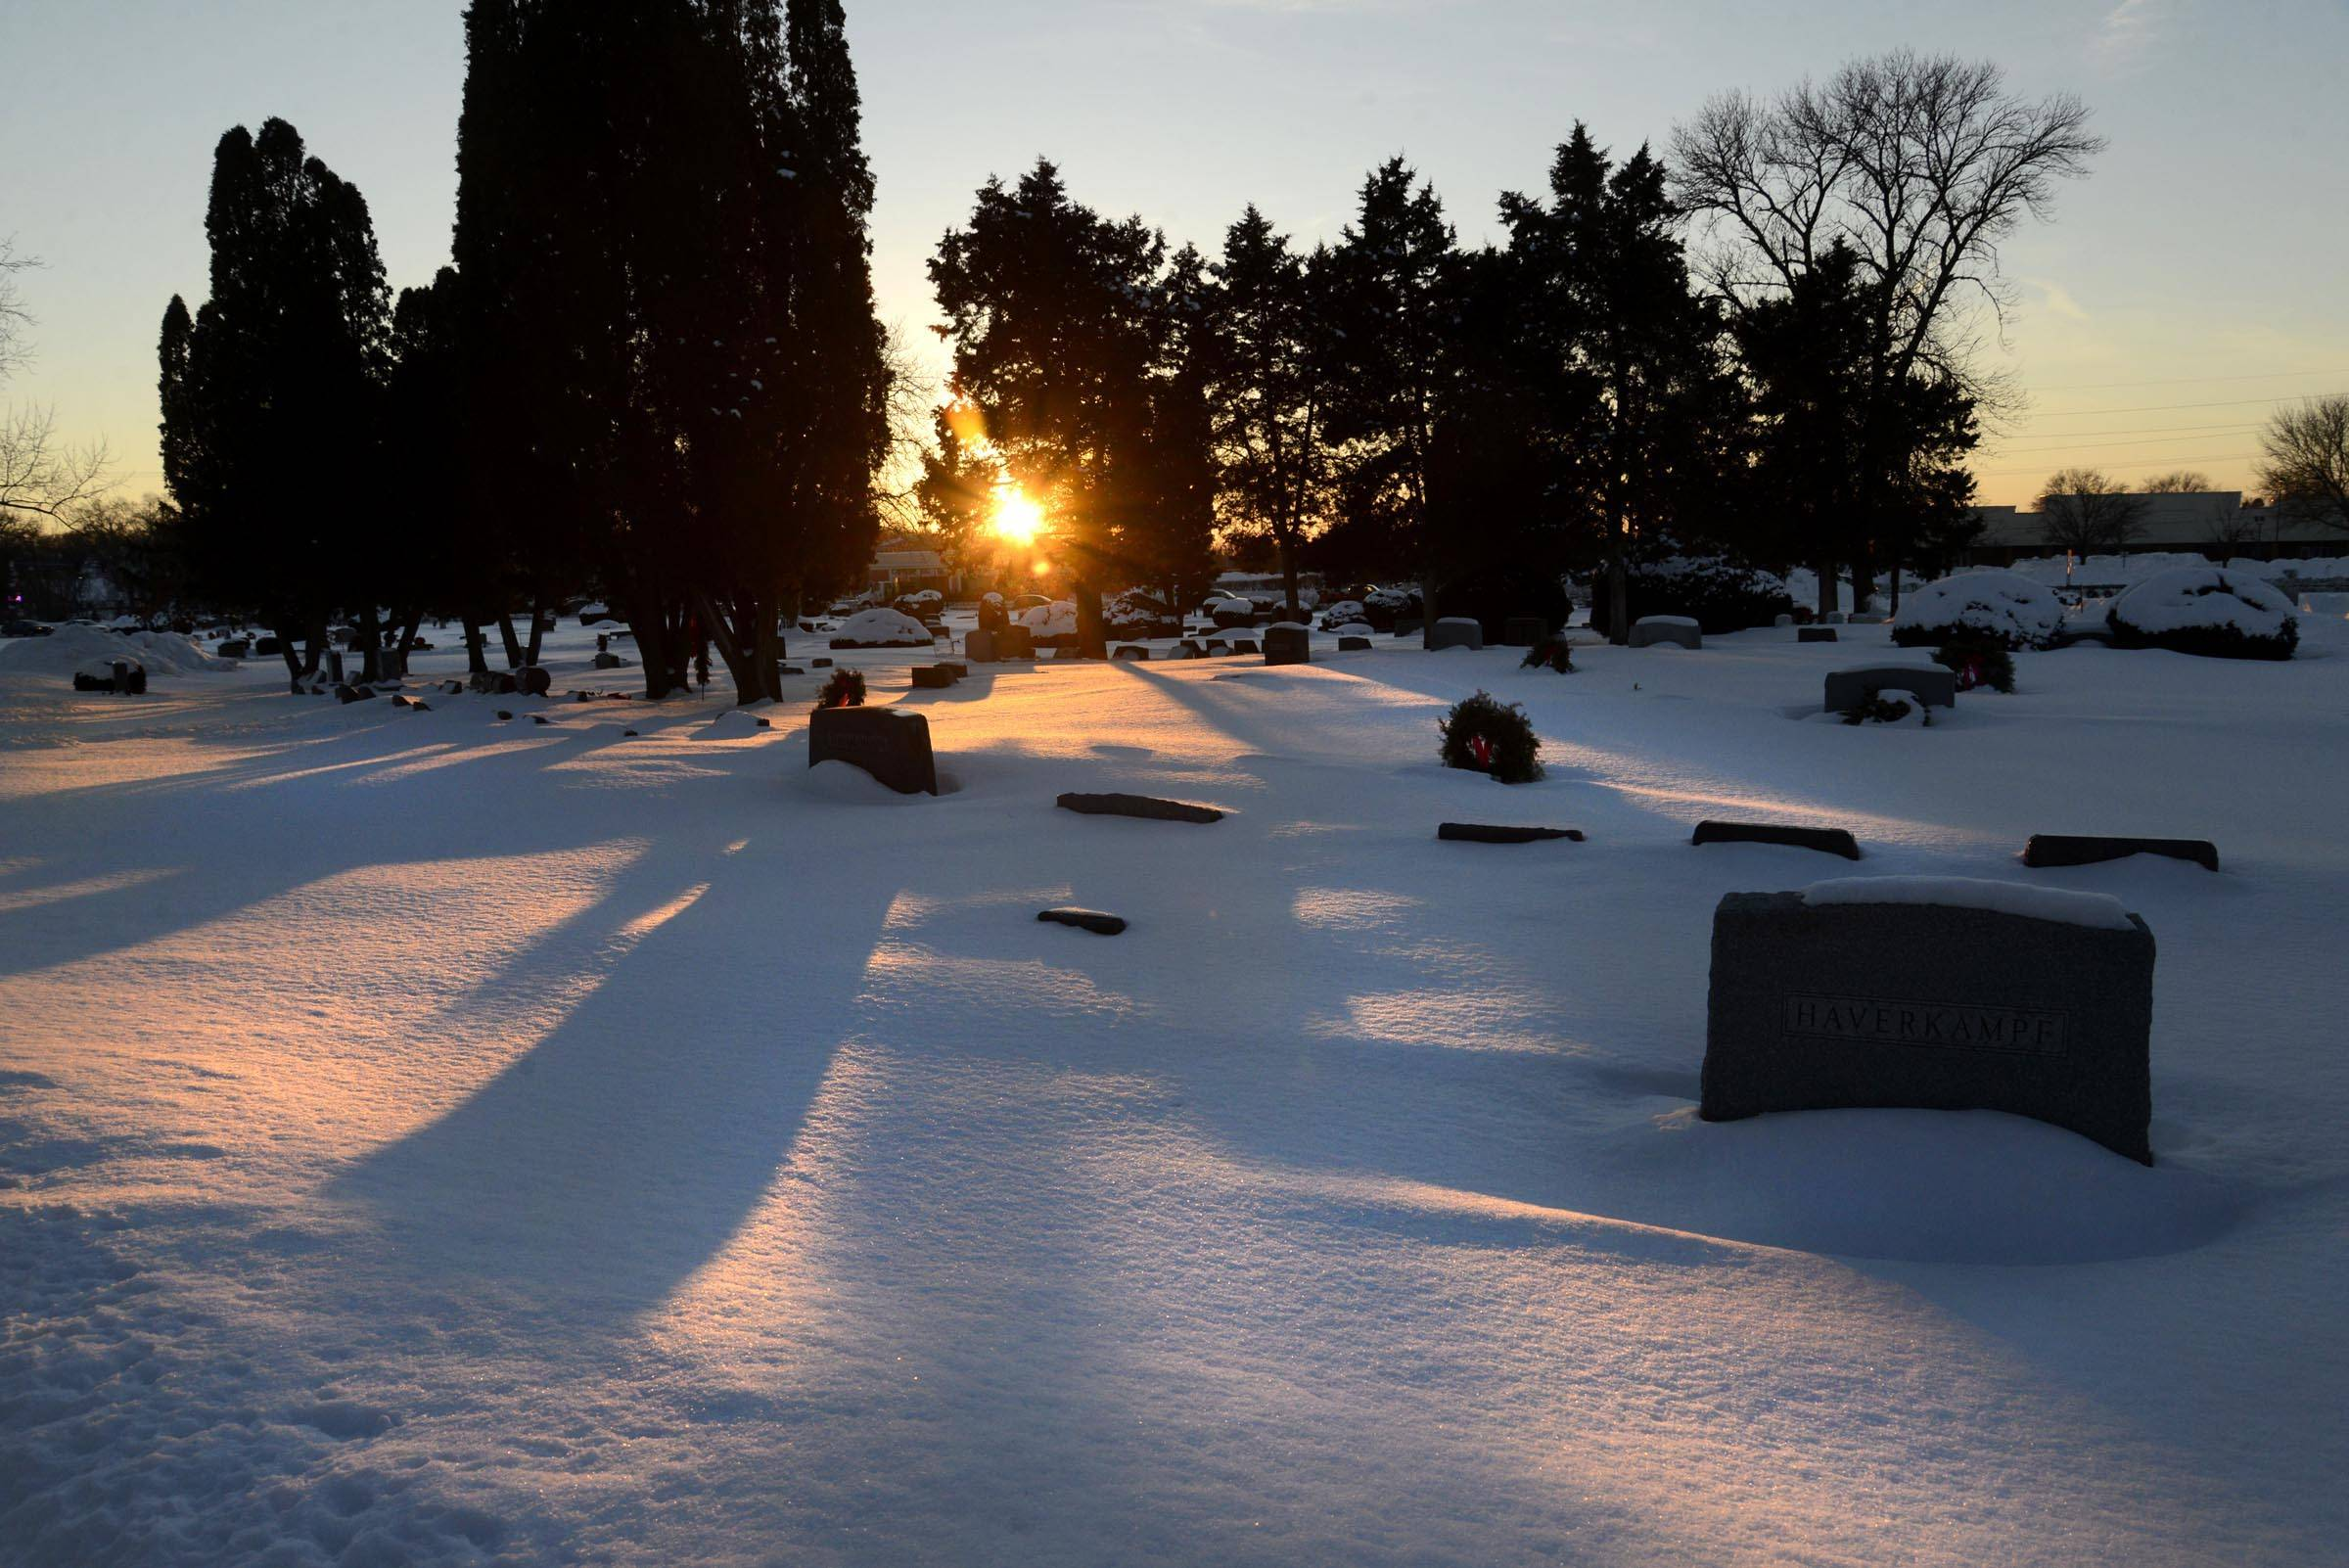 The Dundee Township East Cemetery at routes 25 and 72 will open a new burial section in spring.